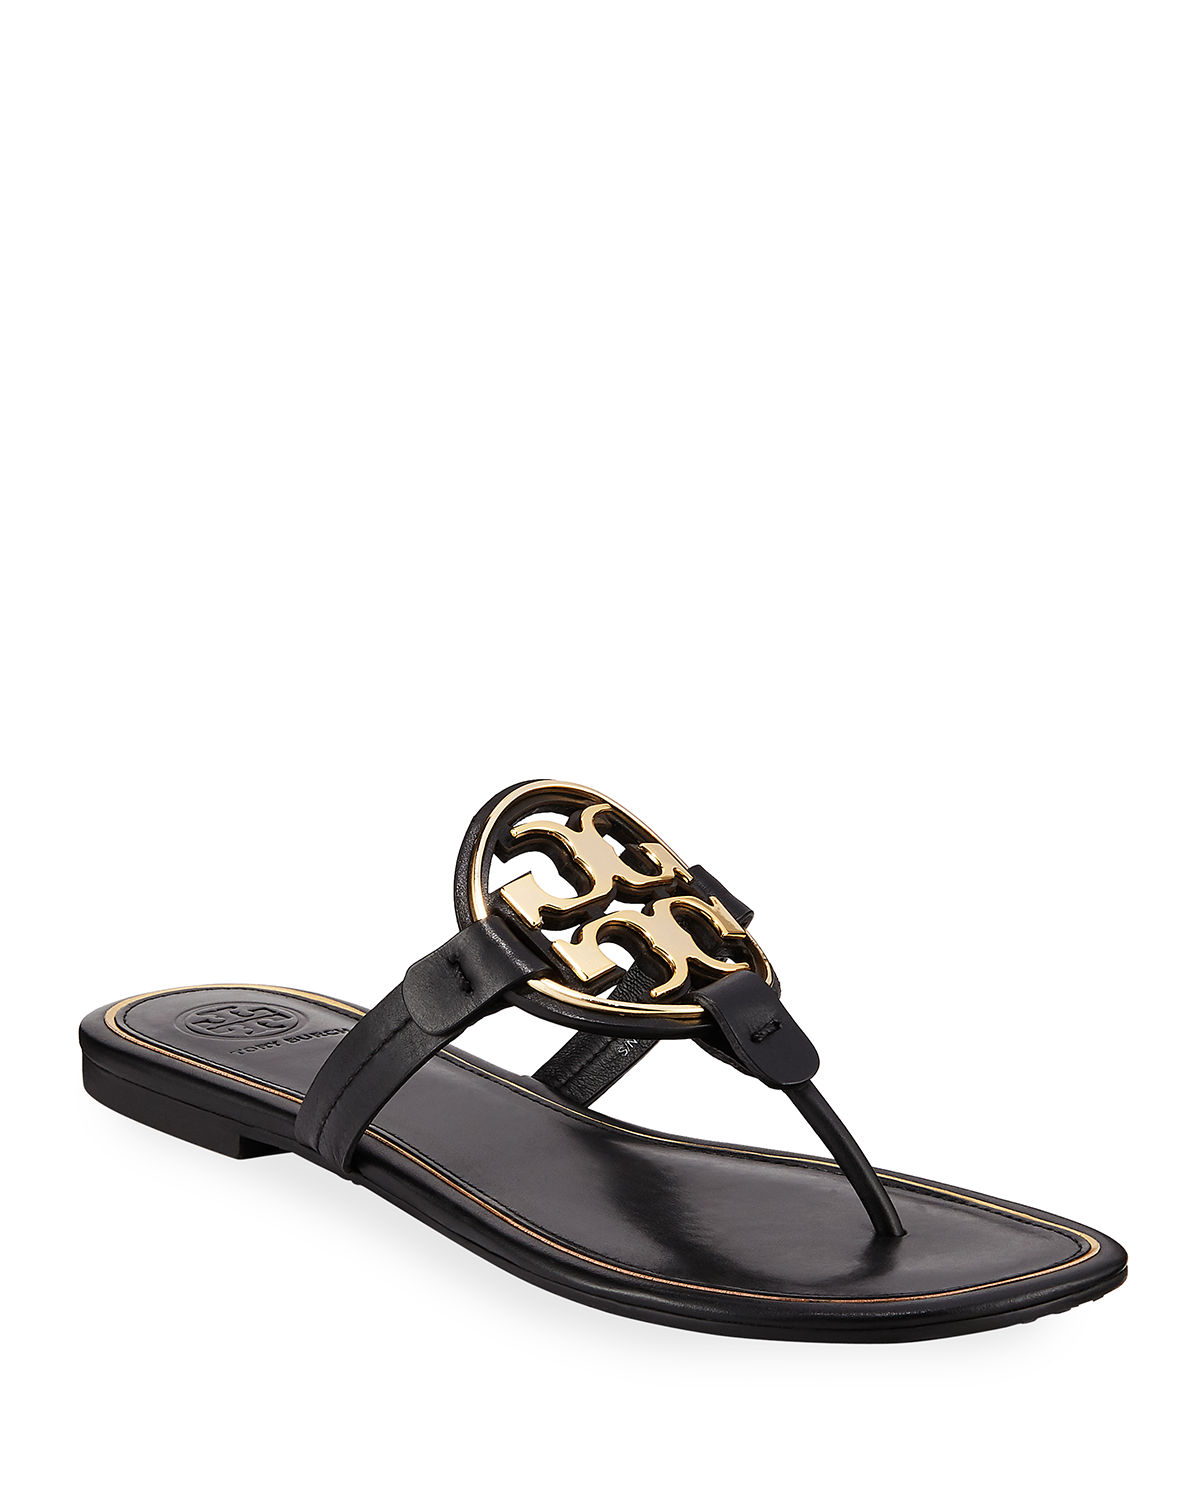 f9c876c8c Tory Burch Miller Flat Metal Logo Slide Sandals